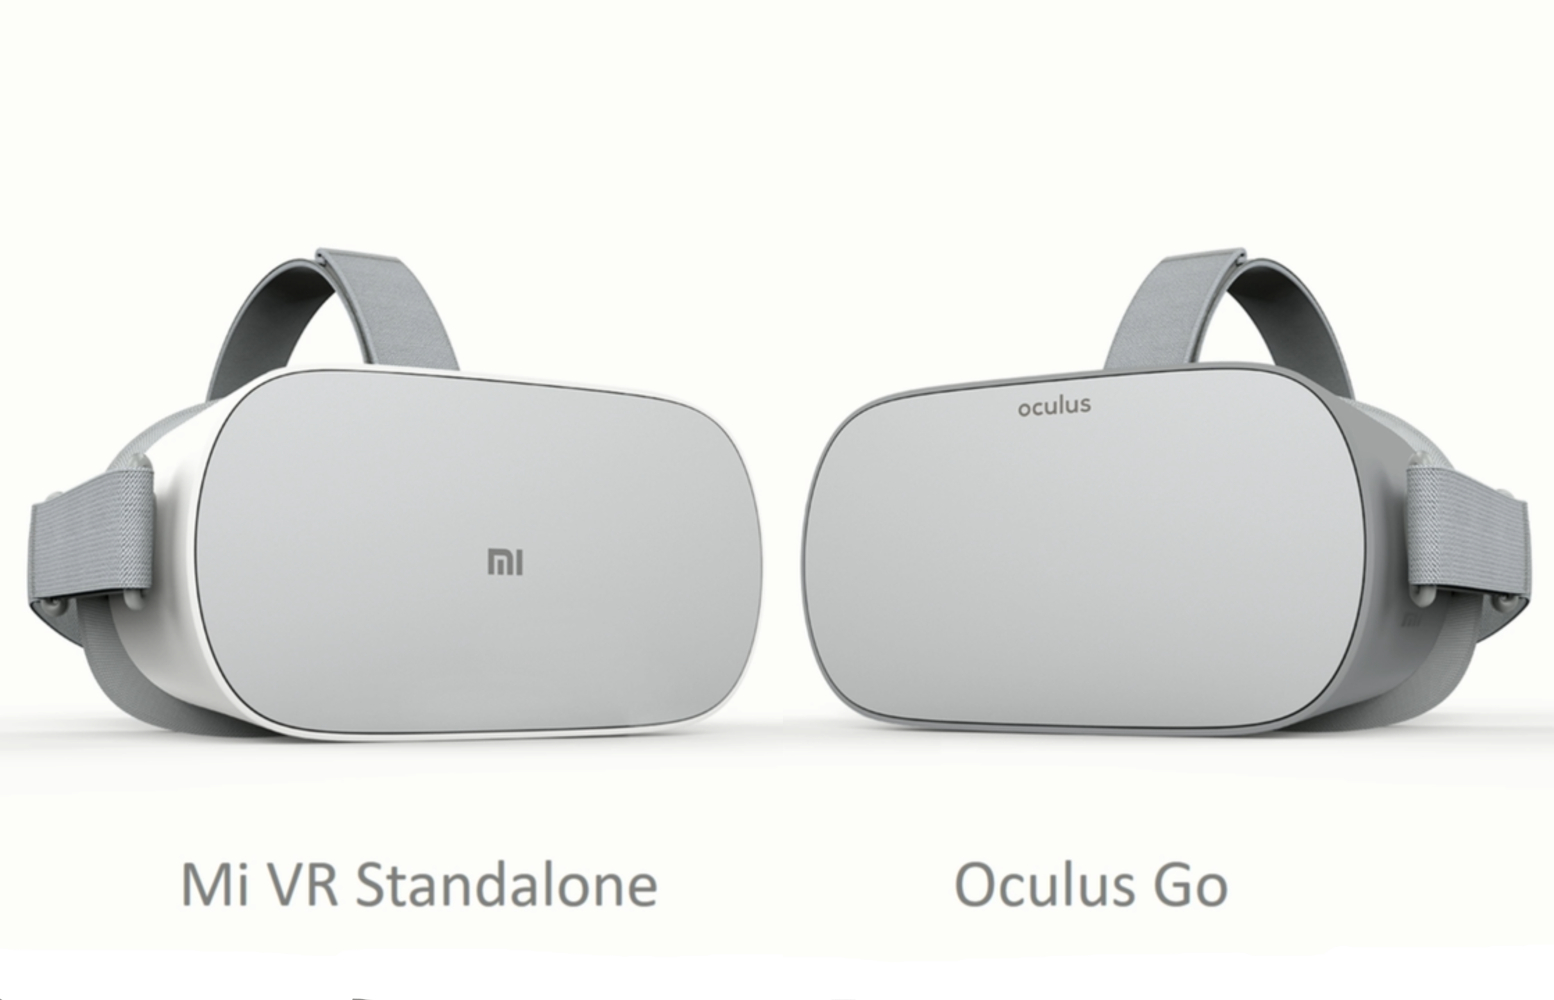 Oculus Go Relies On An Older Qualcomm Snapdragon Chip